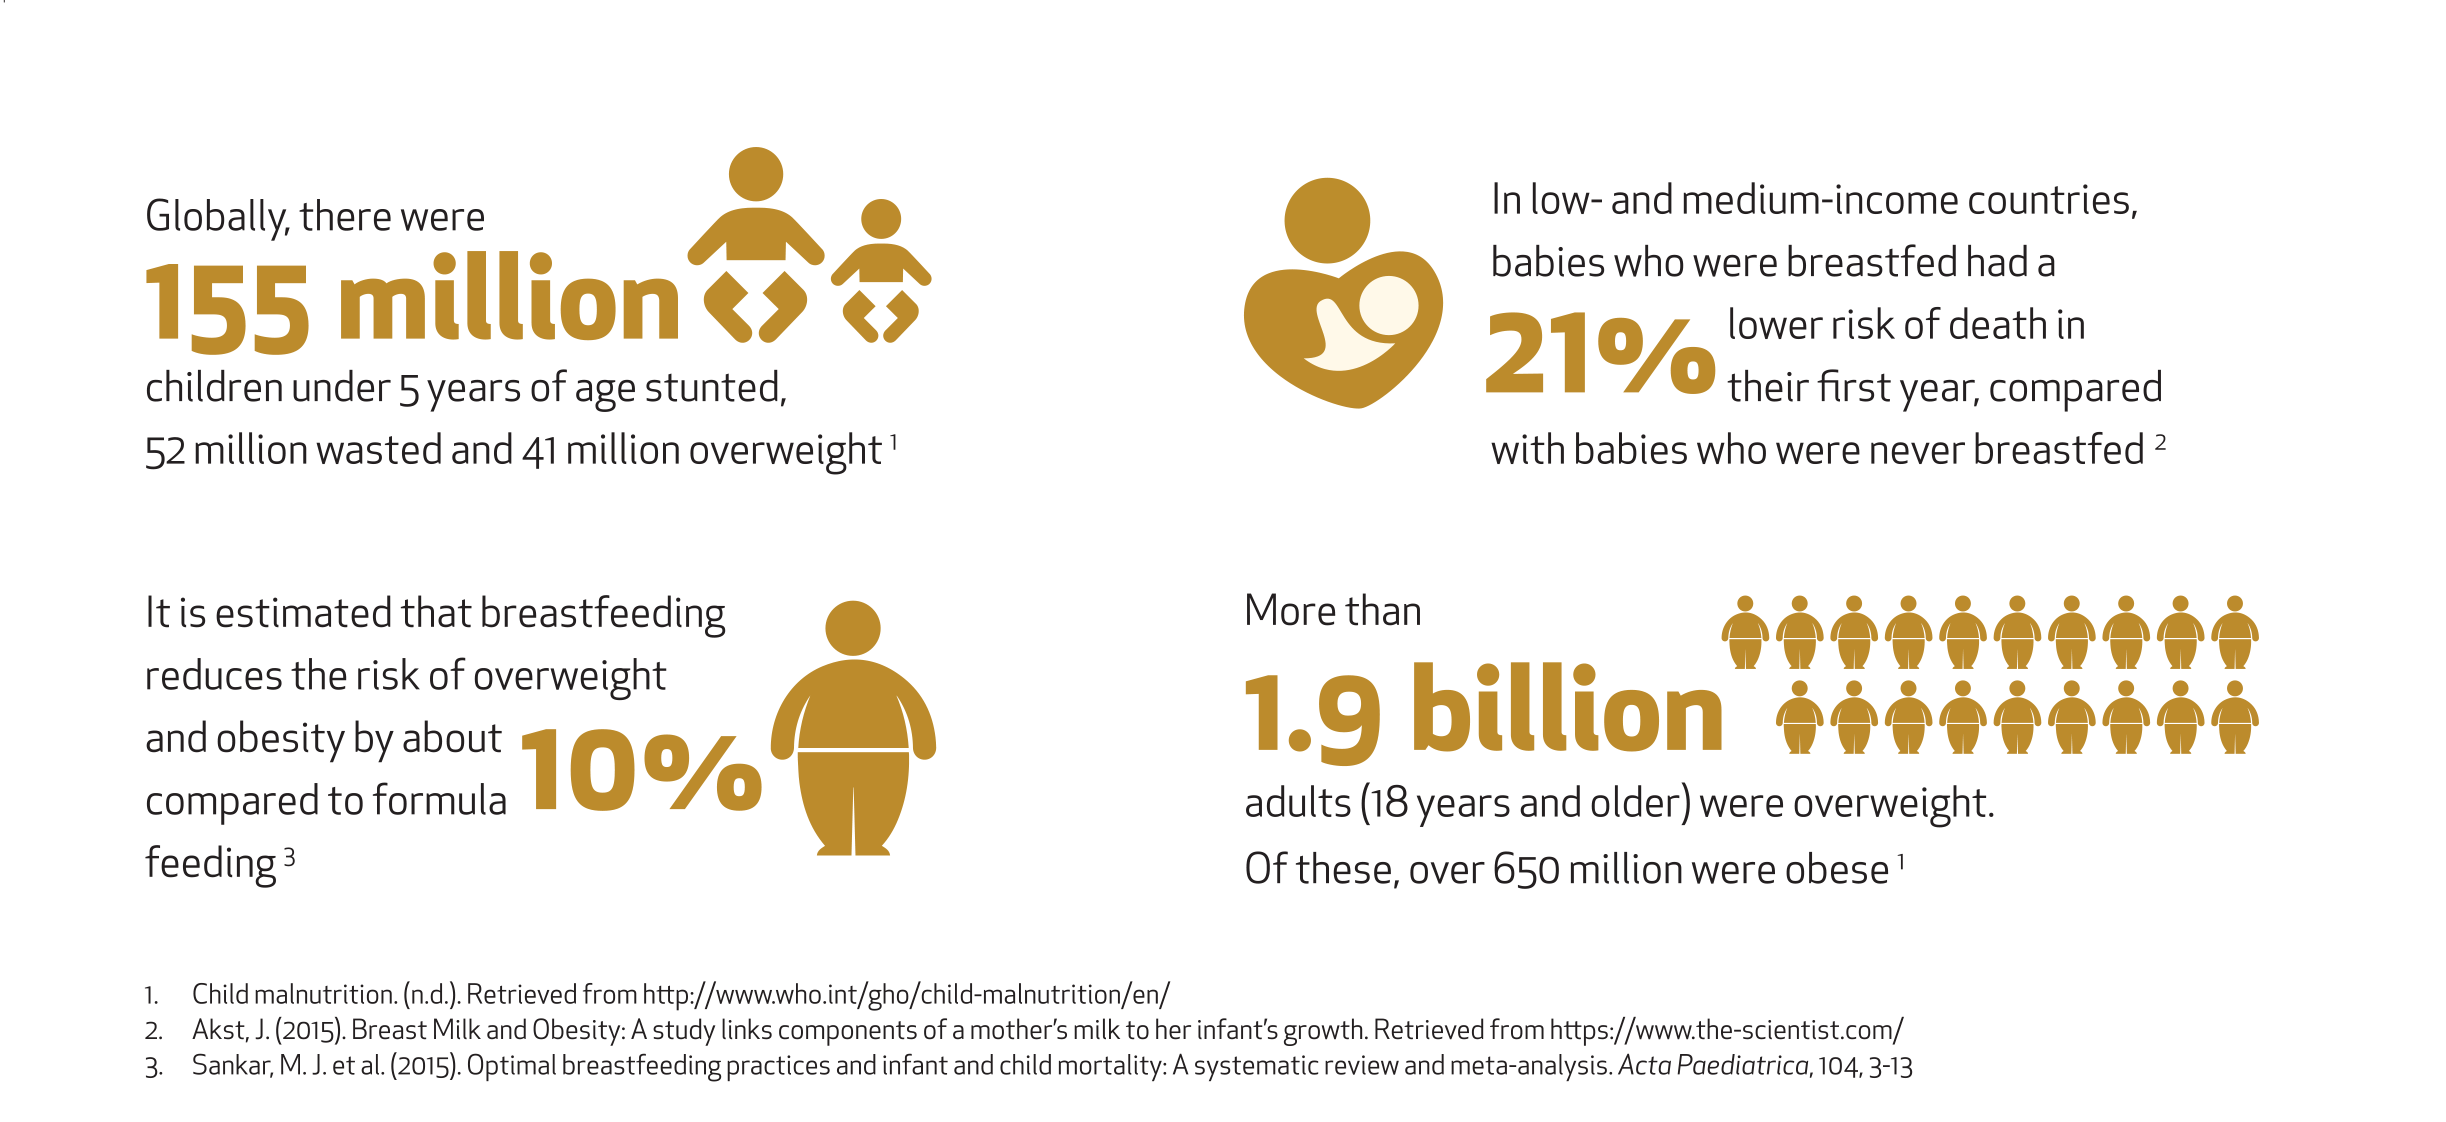 How does breastfeeding affect malnutrition?